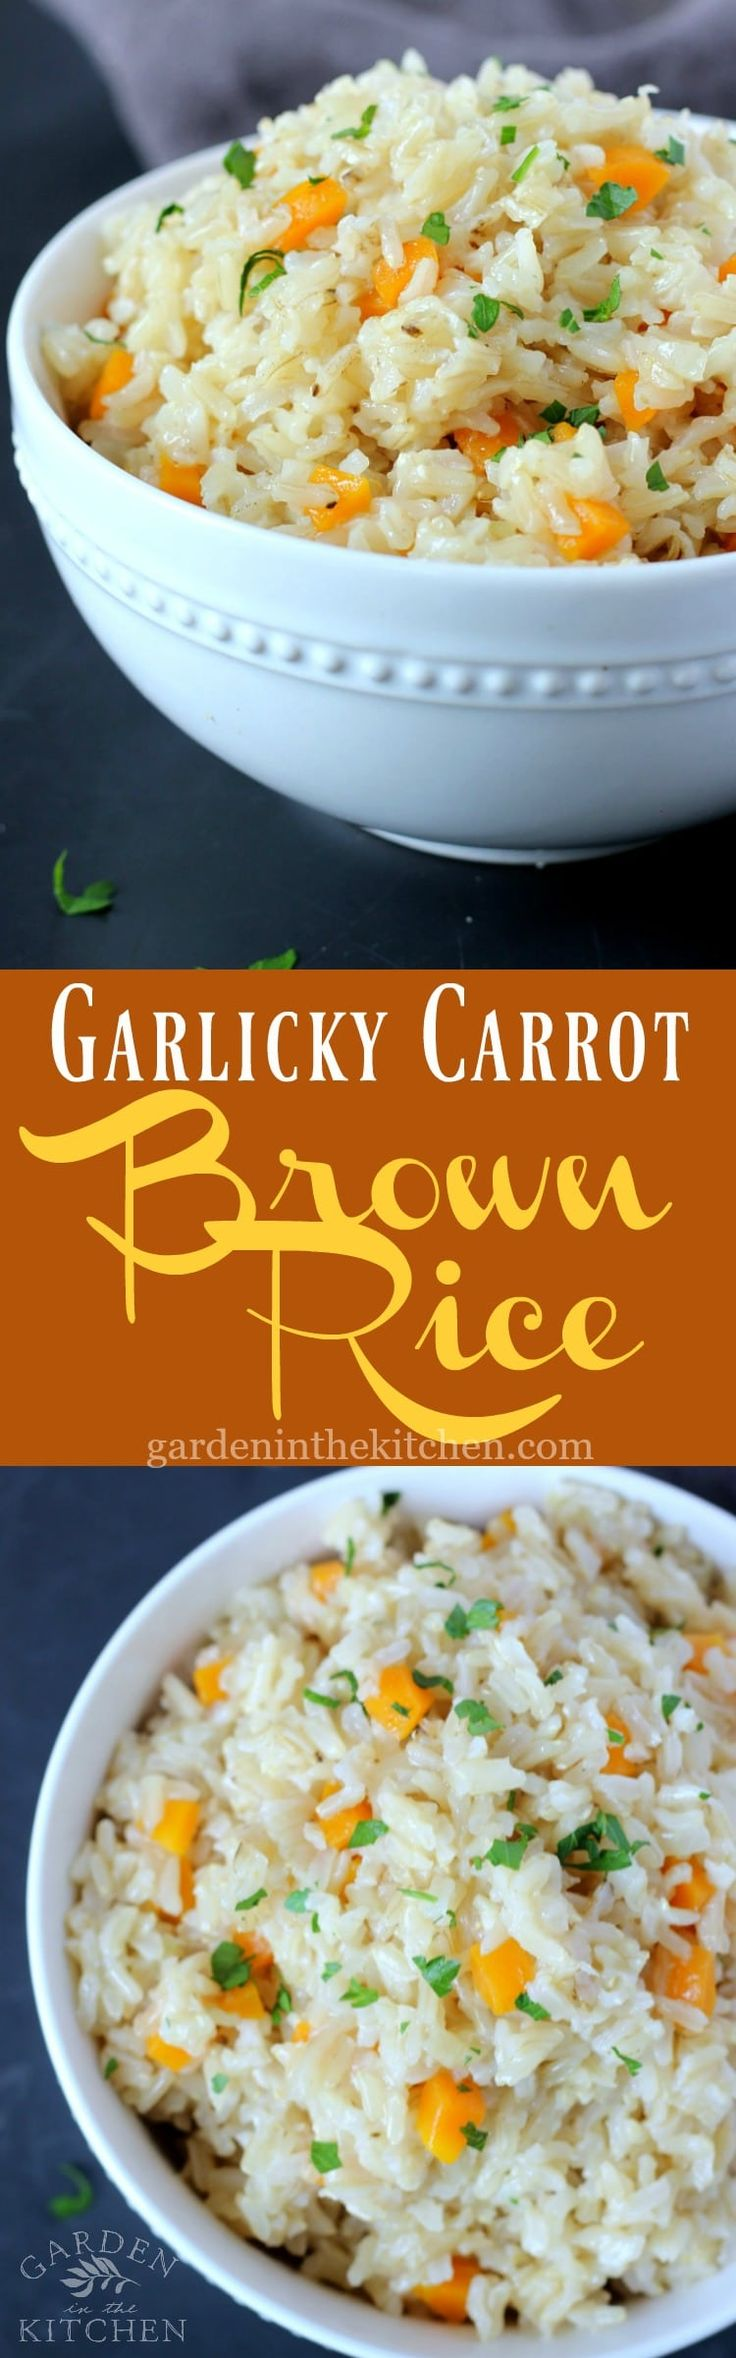 Garlicky Carrot Brown Rice | Garden in the Kitchen #brownrice #garlickybrownrice